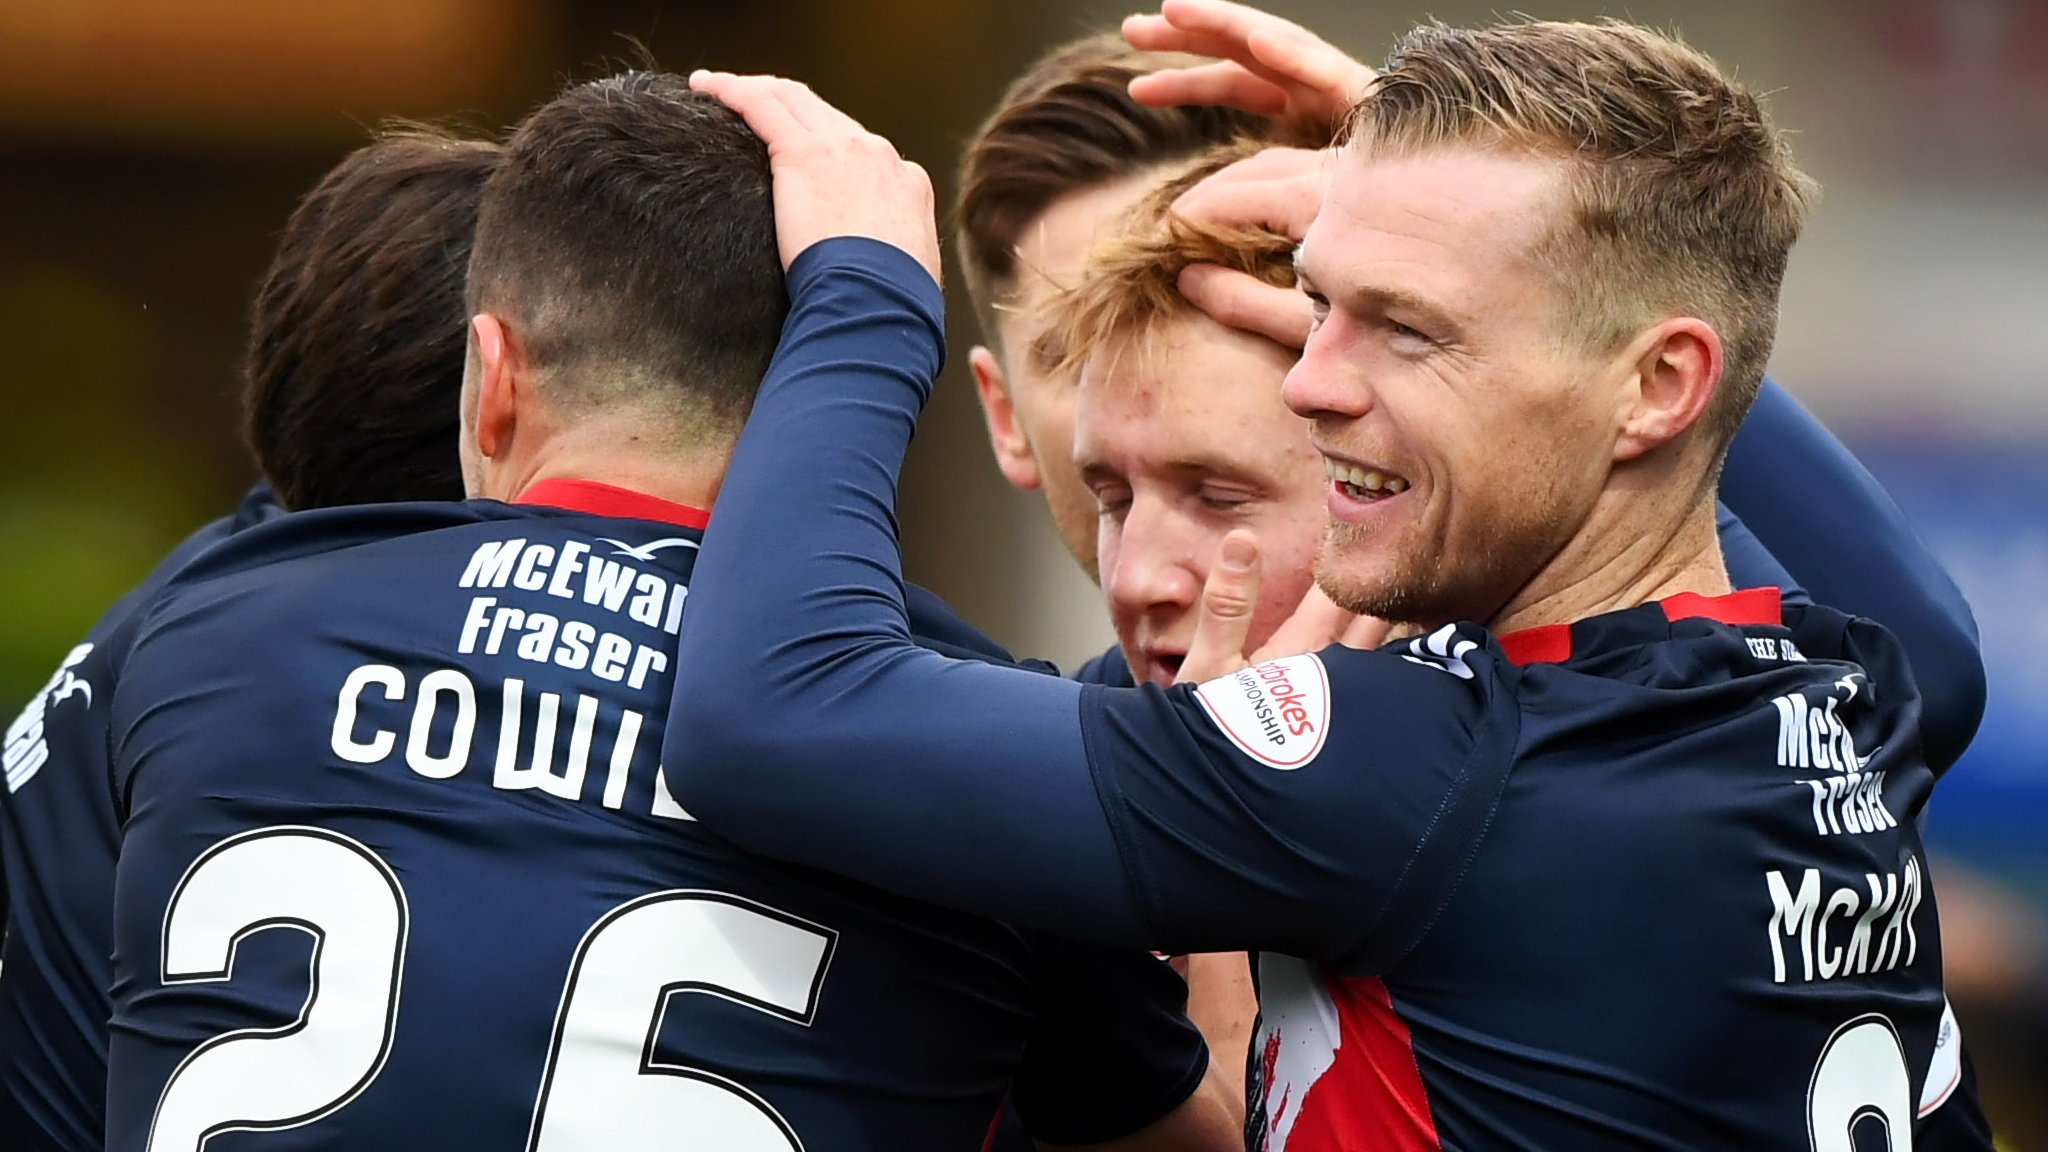 Ross County 5-0 Morton: Dingwall side stay top of Championship